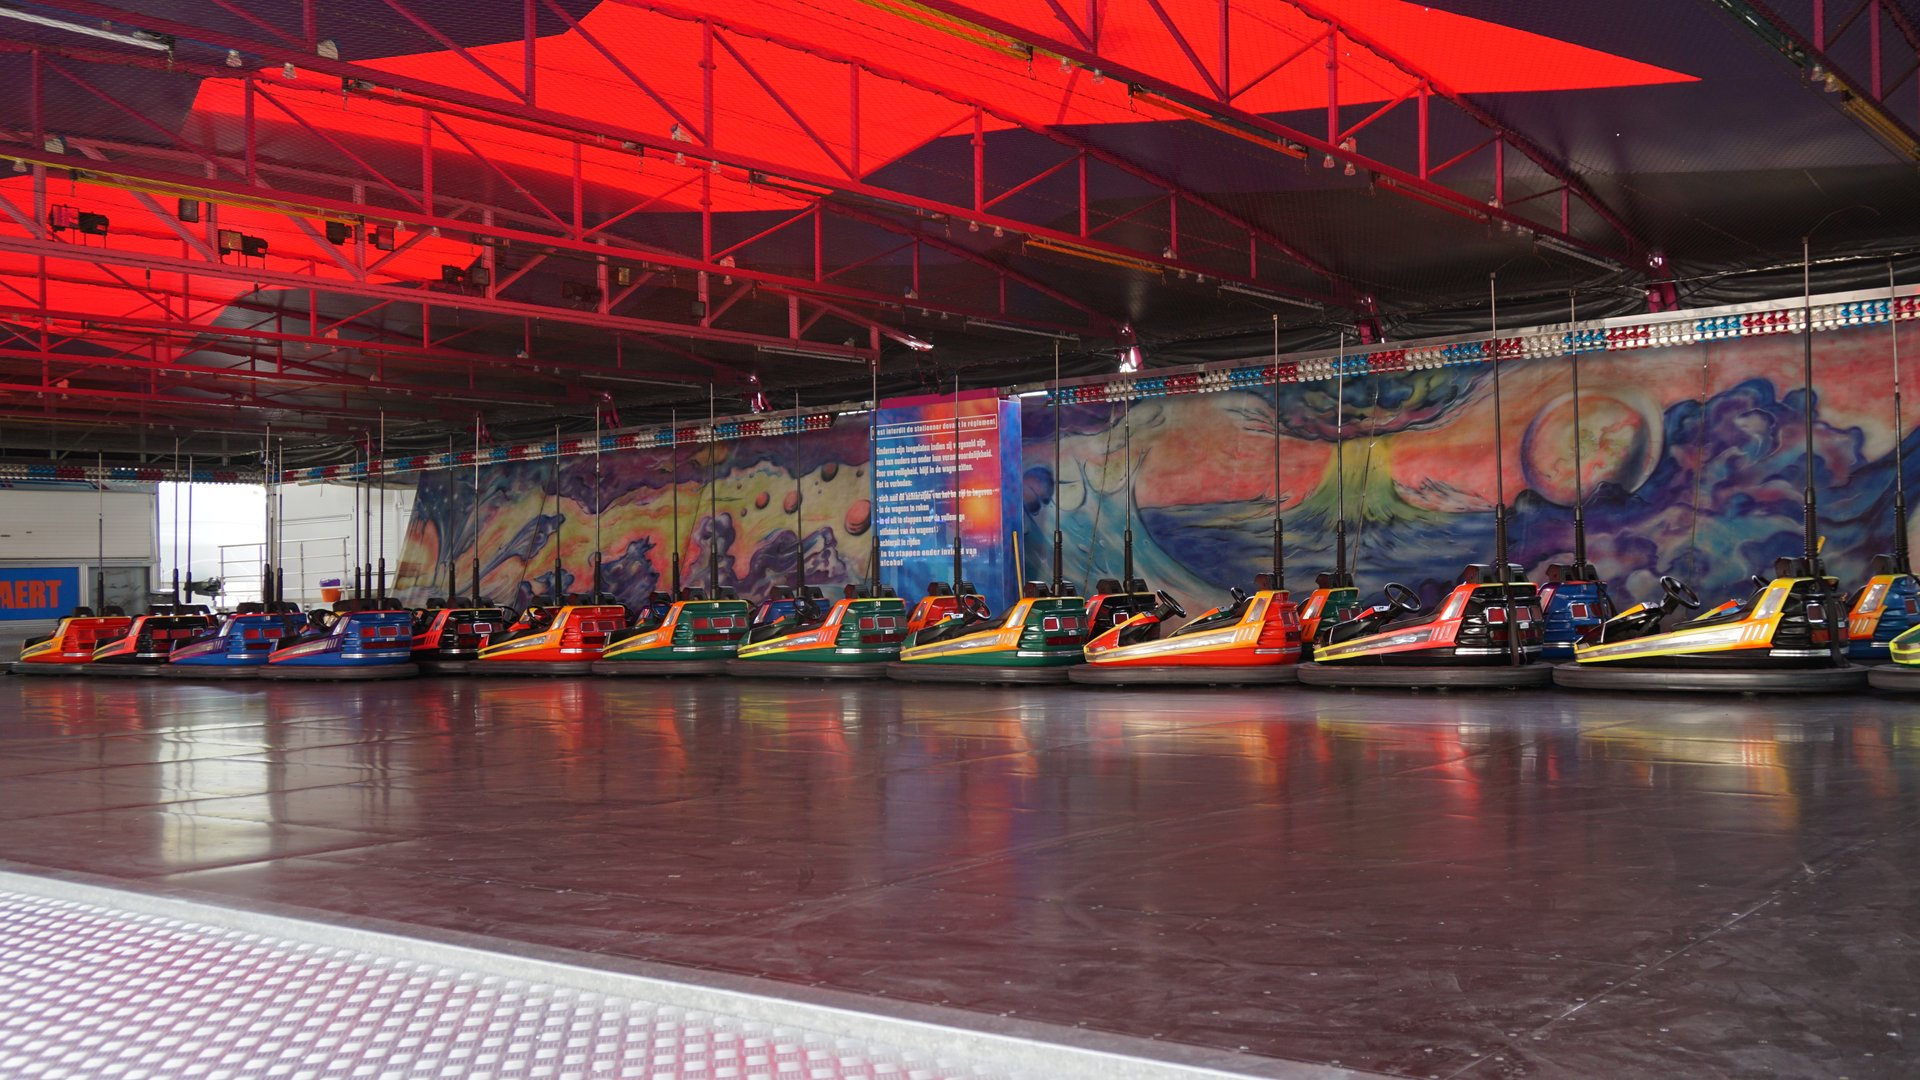 Best time to see Foire du Midi in Brussels 2020